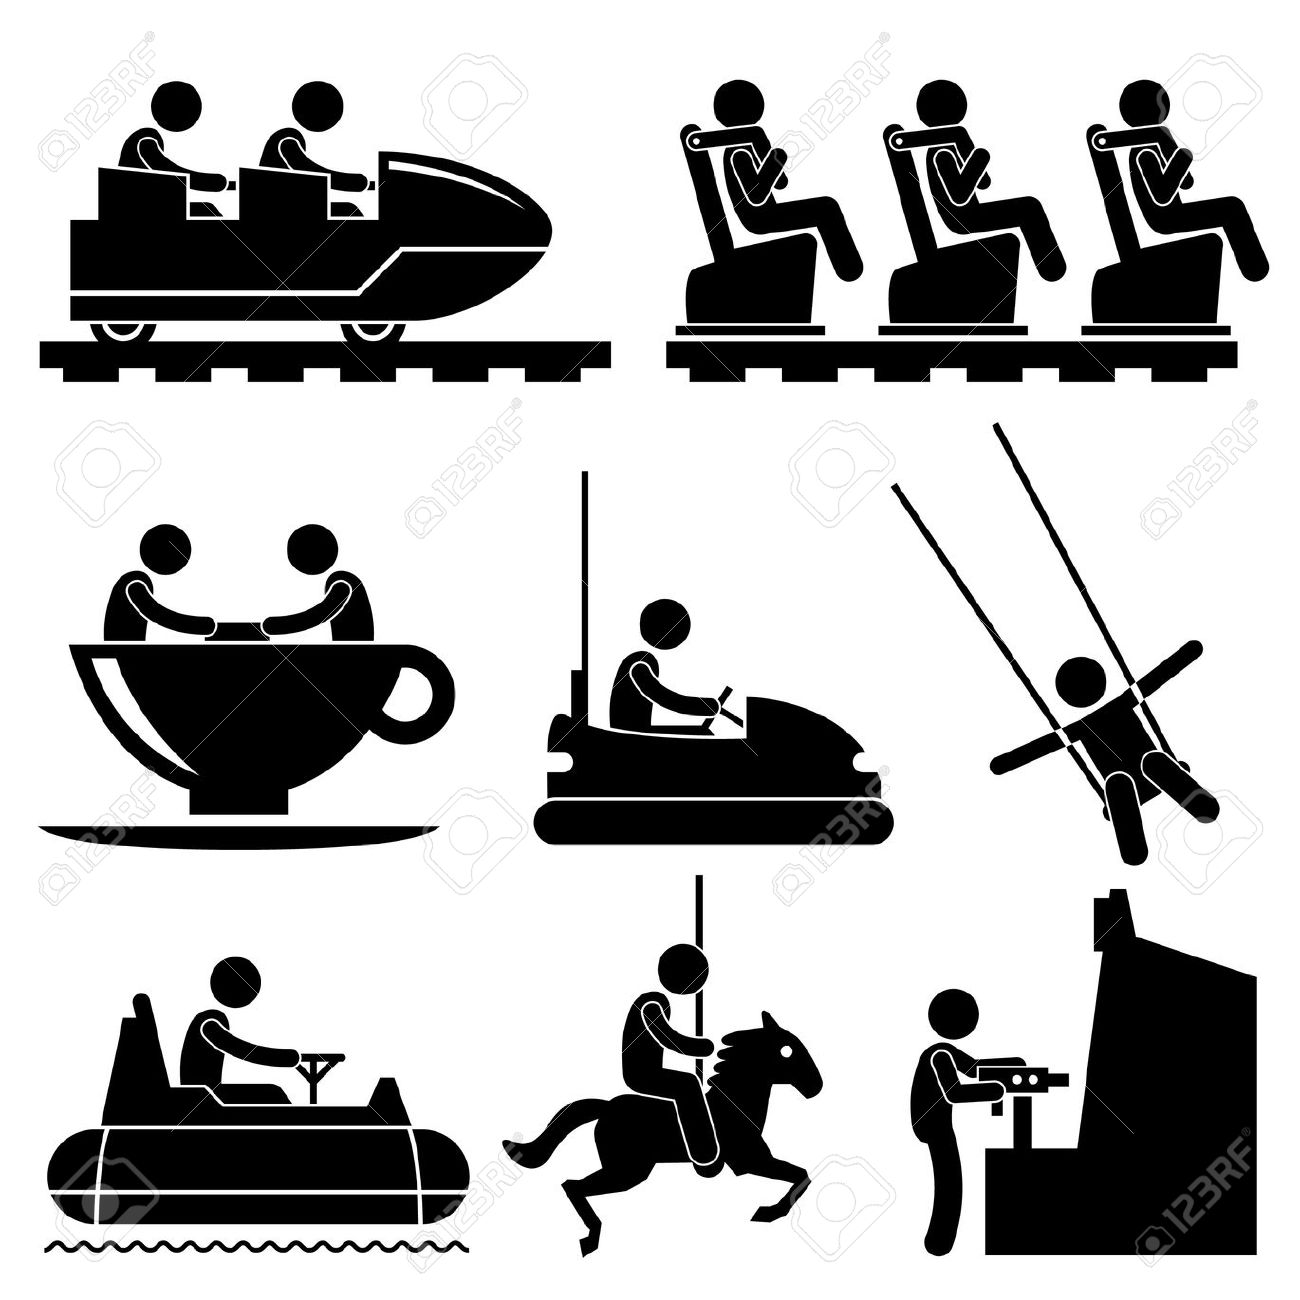 Water ride theme park black and white clipart.